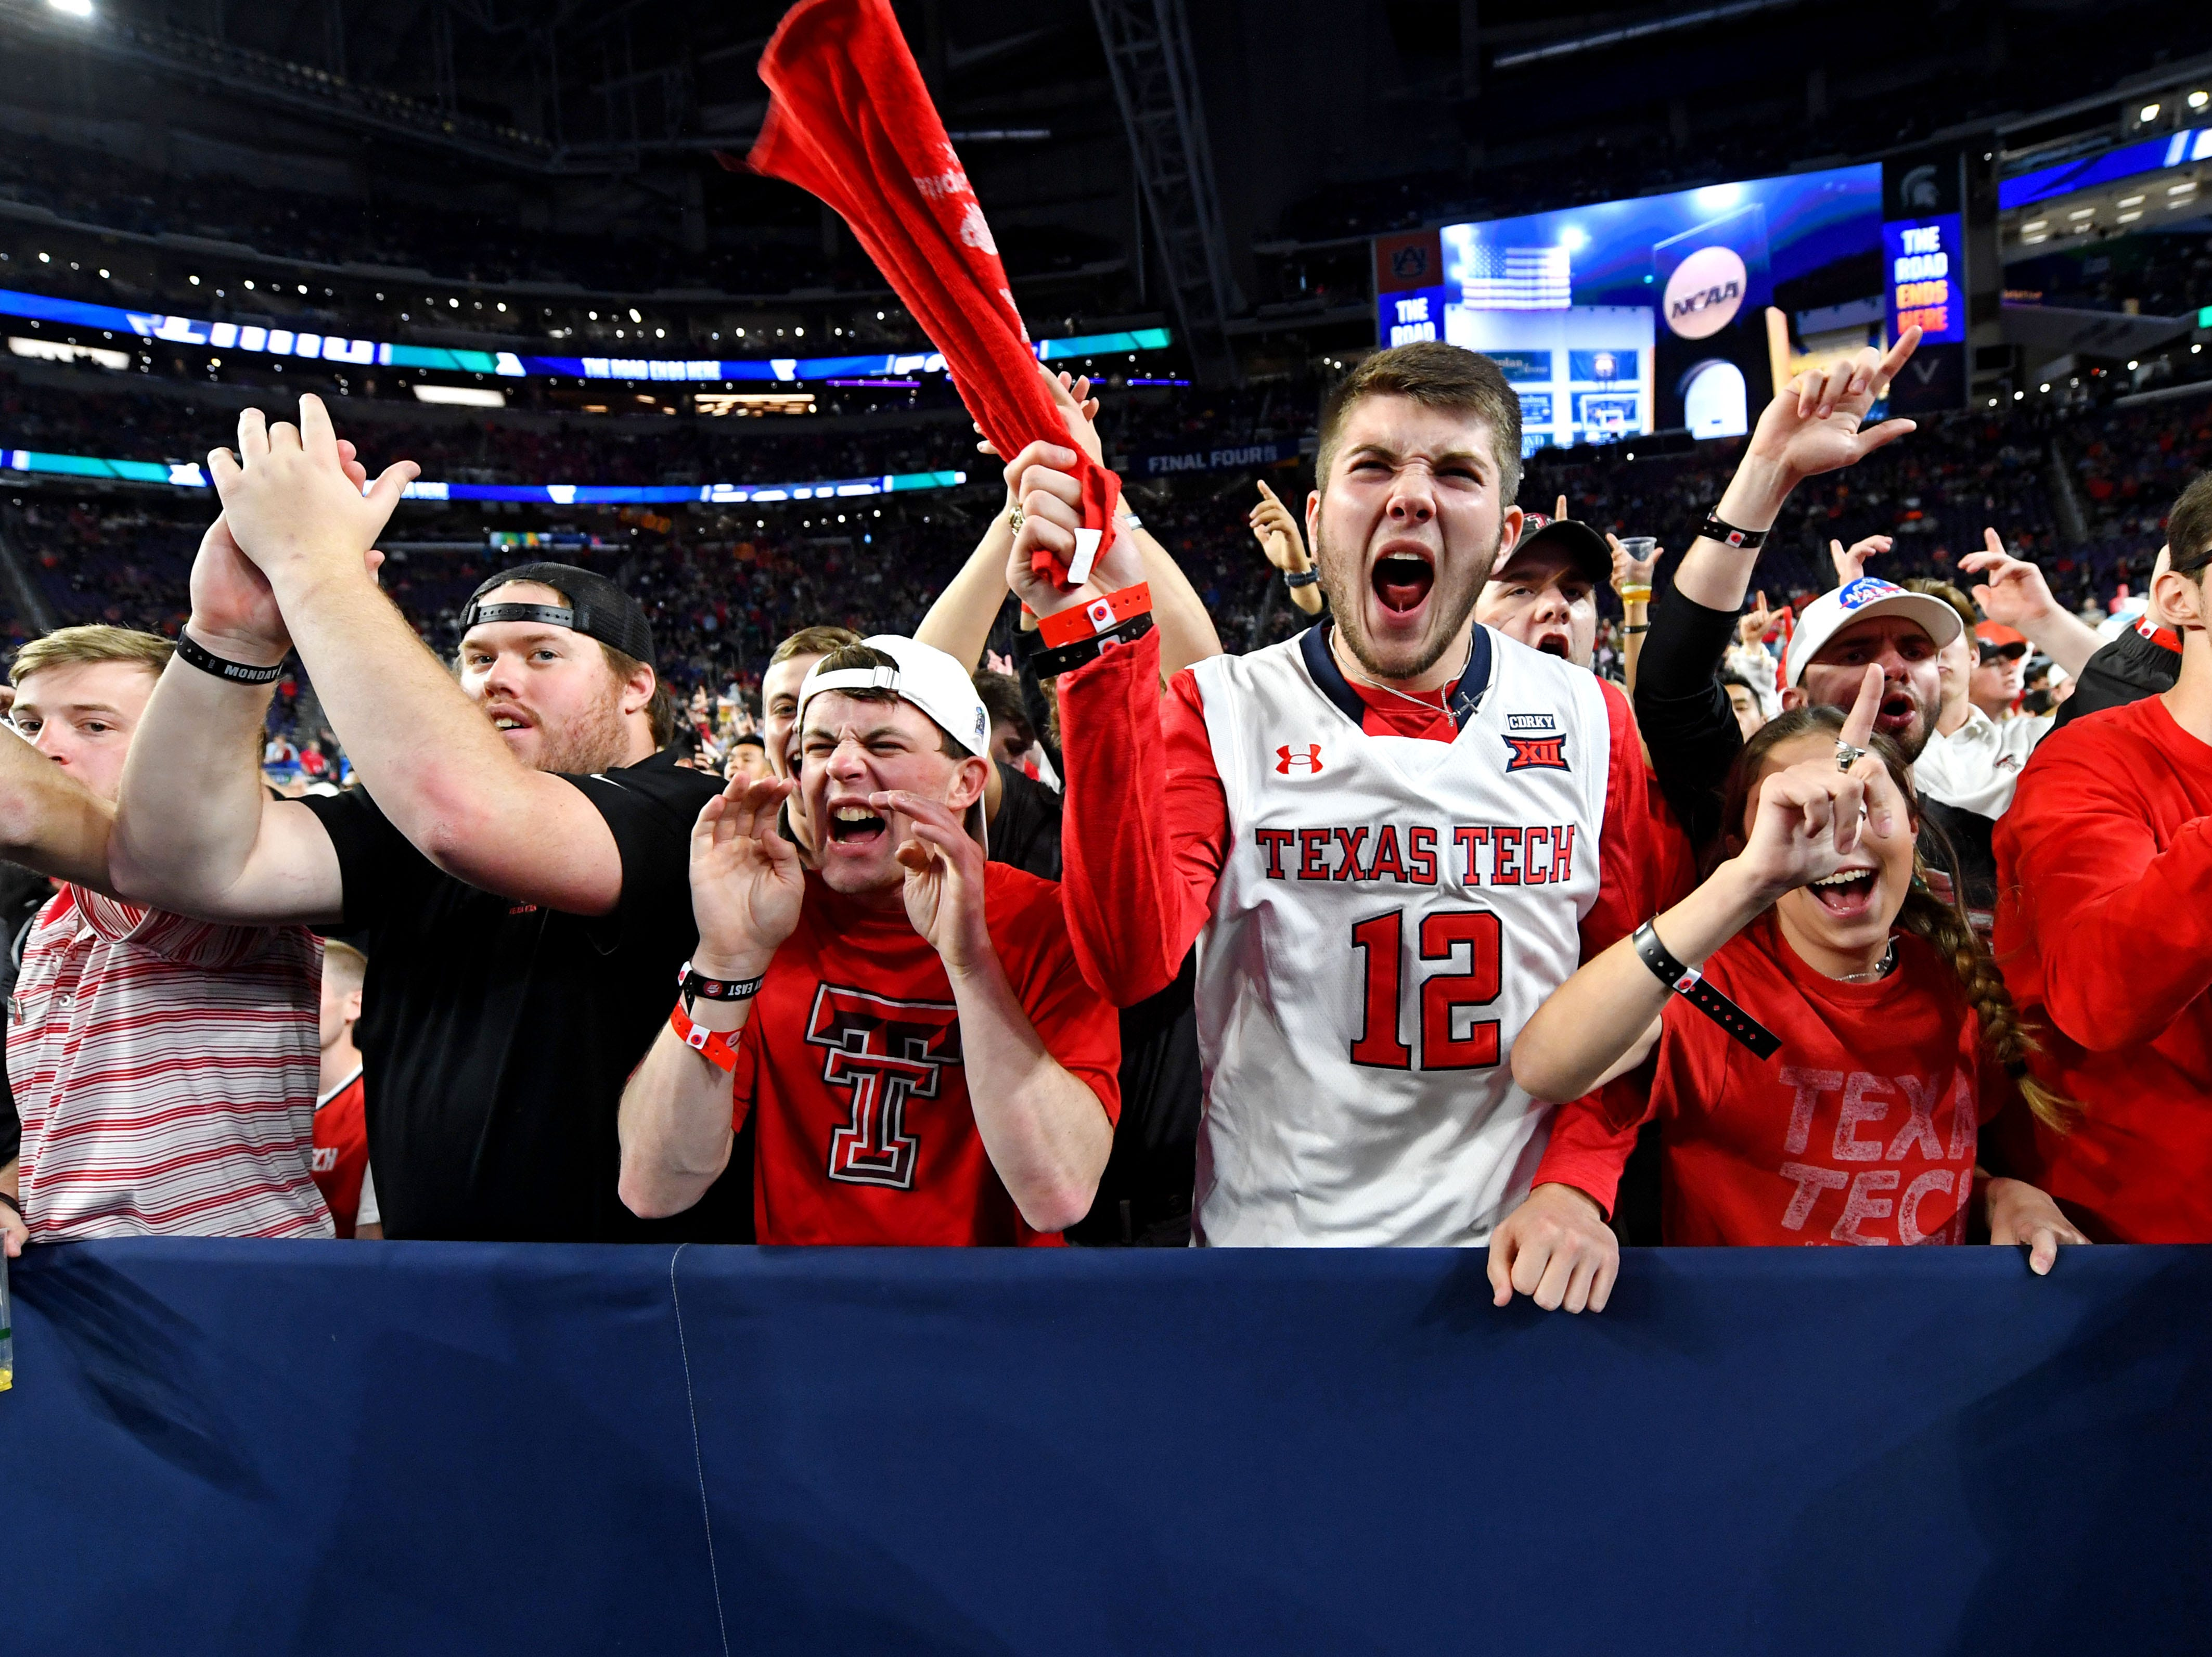 Apr 8, 2019; Minneapolis, MN, USA; Texas Tech Red Raiders fans cheers before the game against the Virginia Cavaliers in the championship game of the 2019 men's Final Four at US Bank Stadium. Mandatory Credit: Bob Donnan-USA TODAY Sports